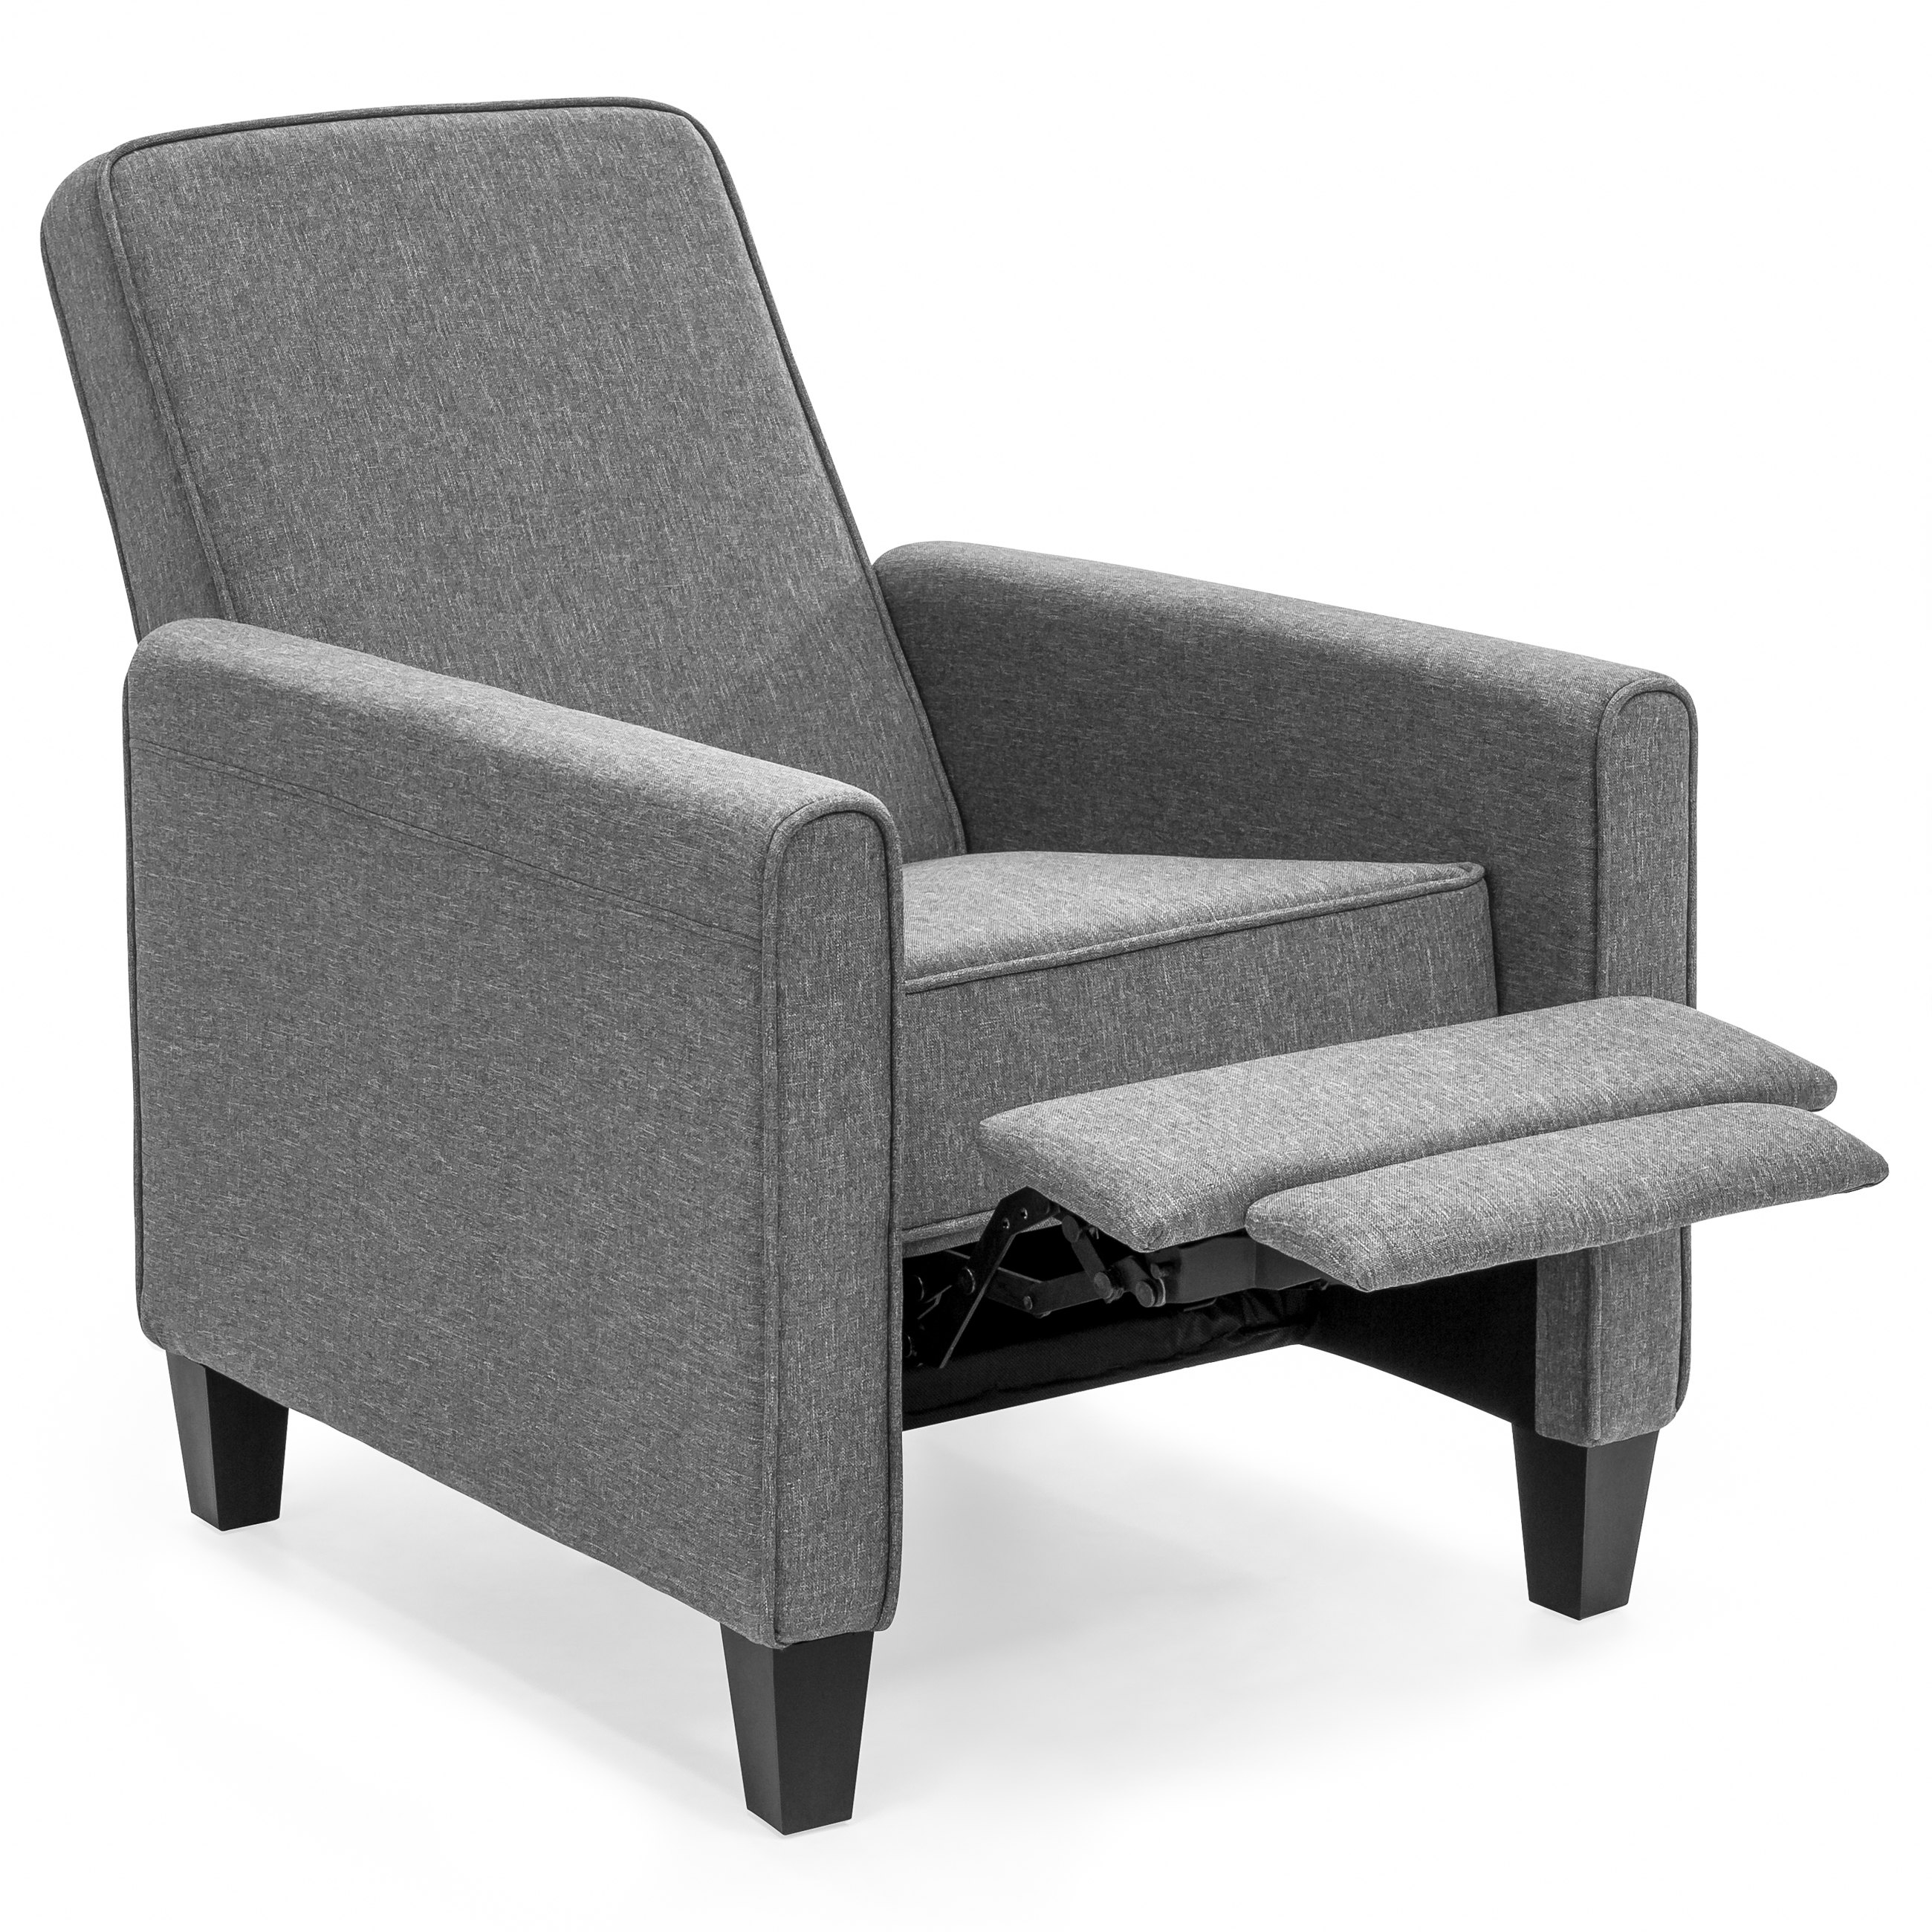 Best Choice Products Modern Sleek Upholstered Fabric Padded Executive  Recliner Club Chair w/ Leg Rest